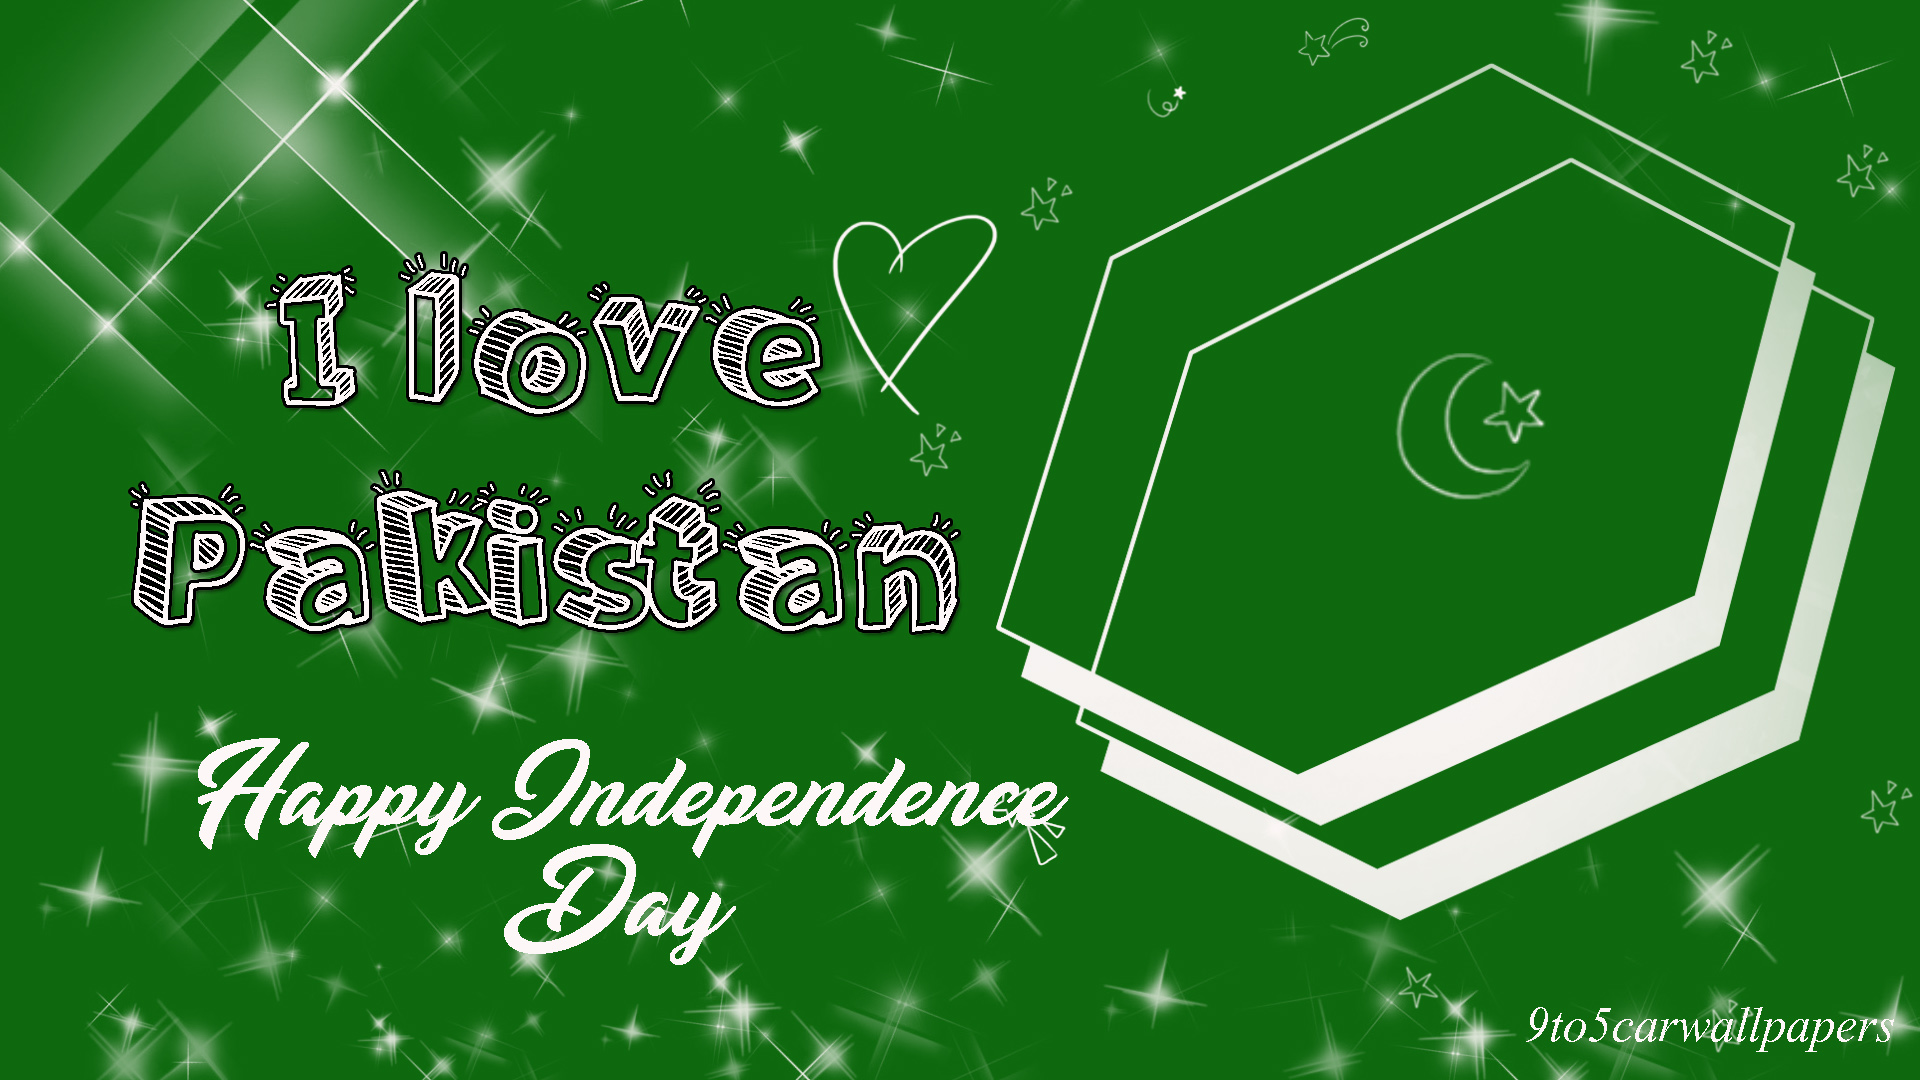 pakistan-day-images-cards-wishes-posters